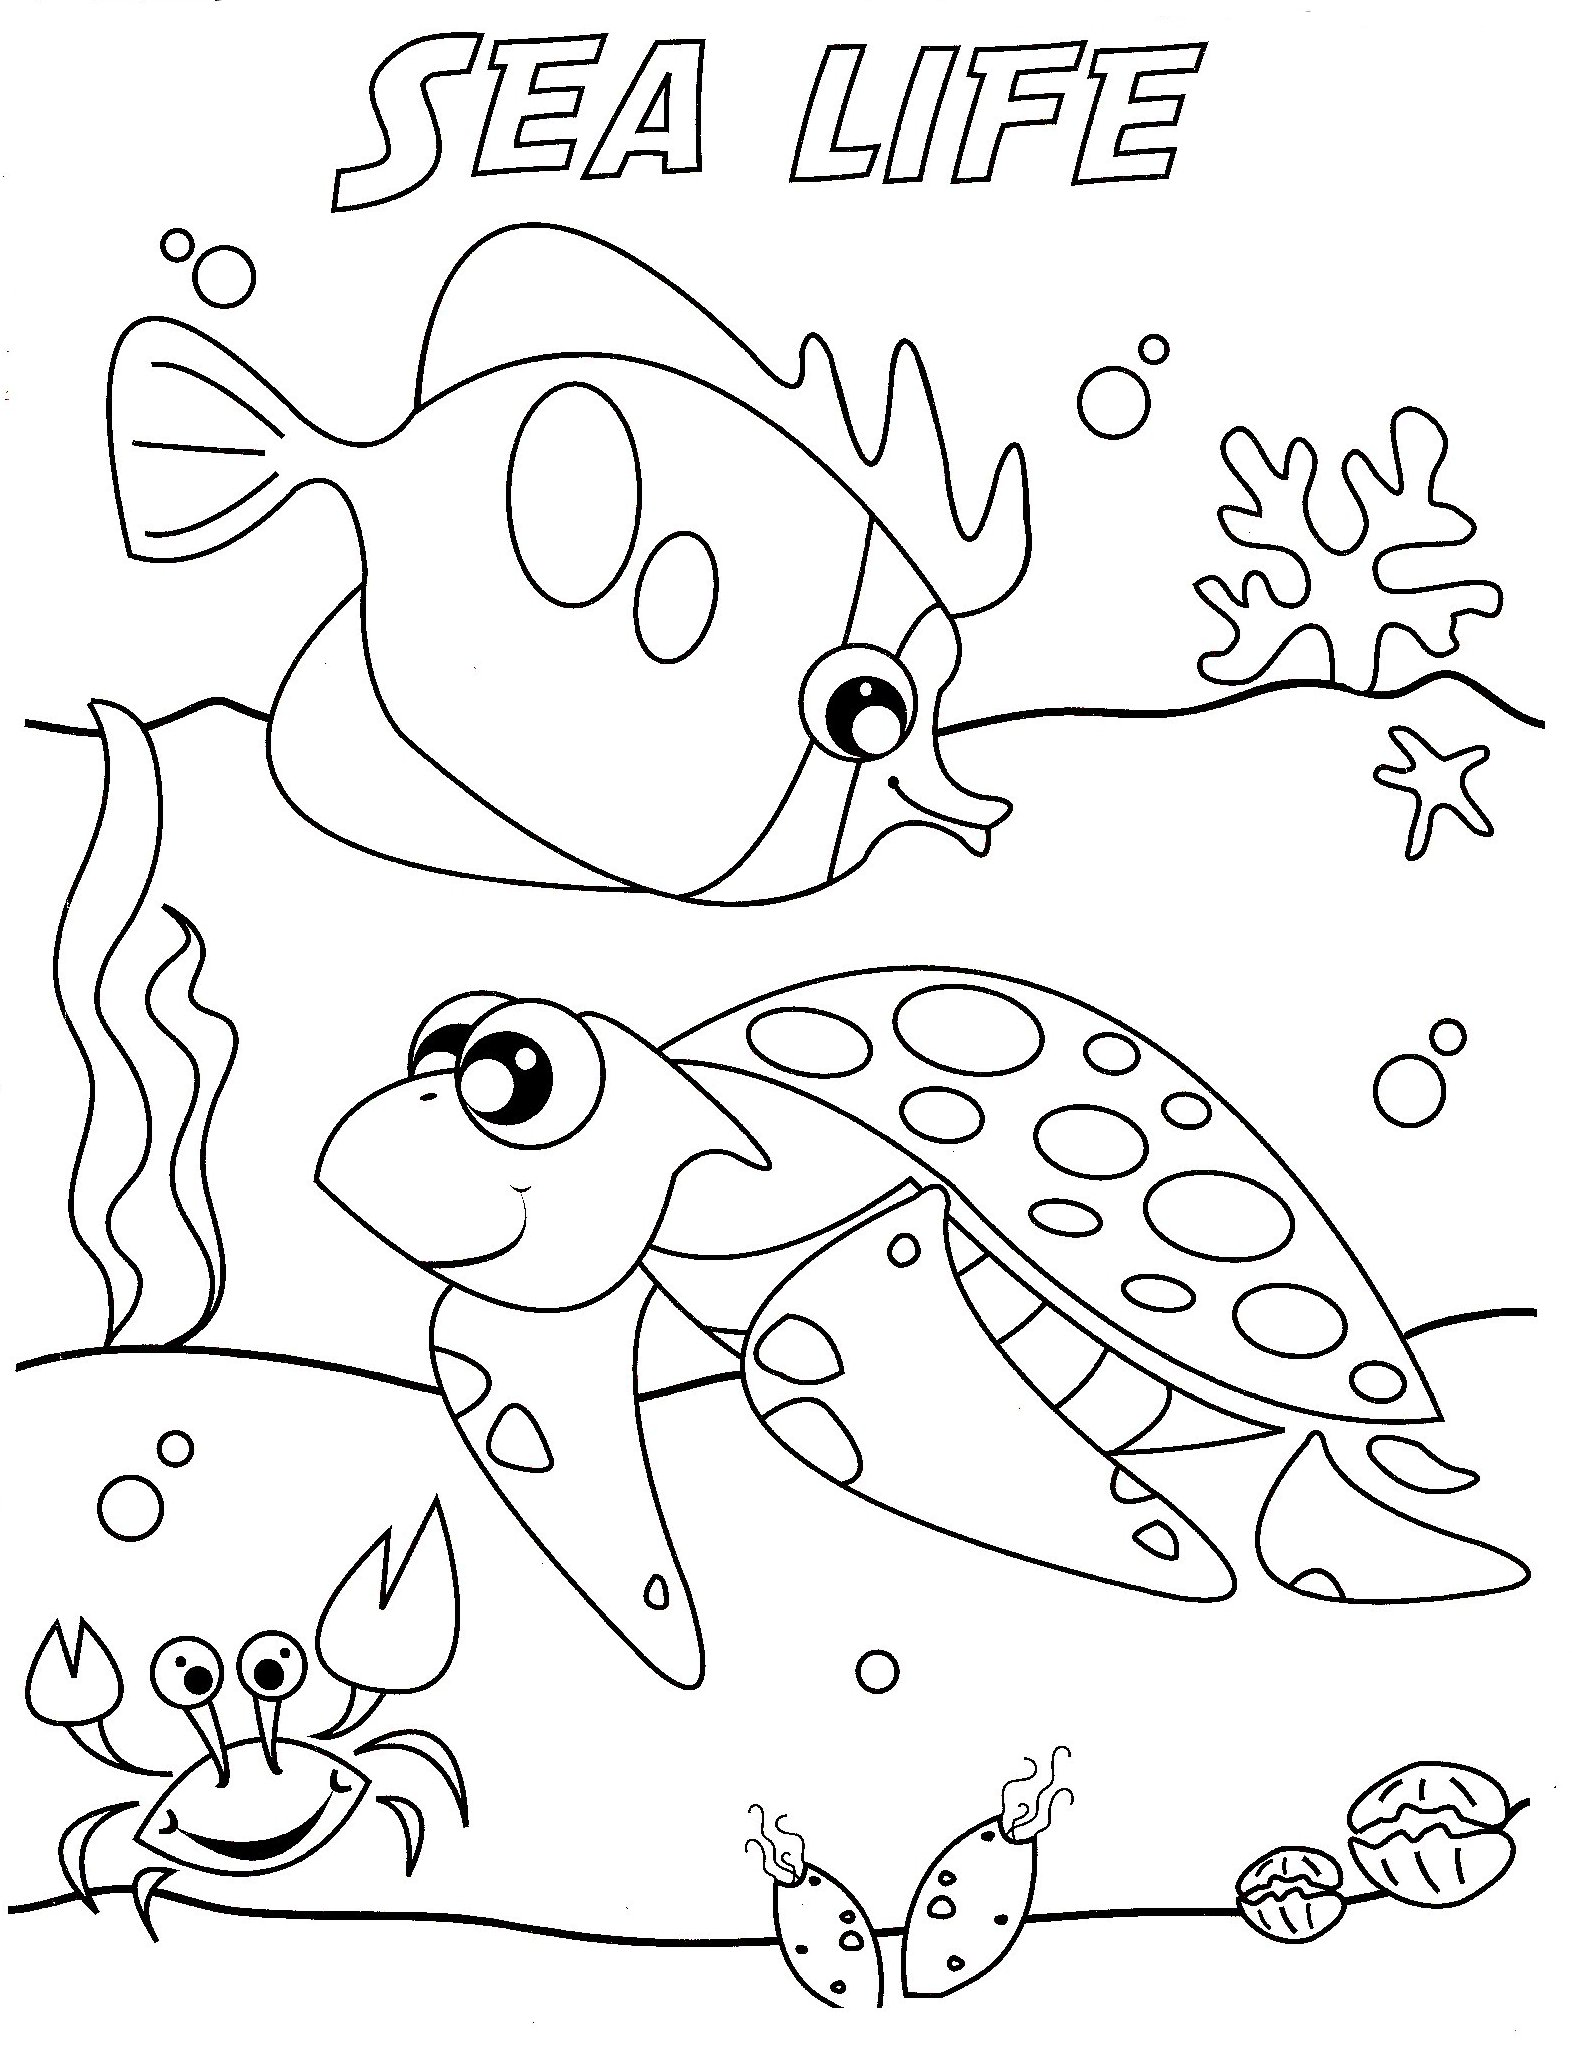 ocean ecosystem drawing at getdrawings com free for personal use